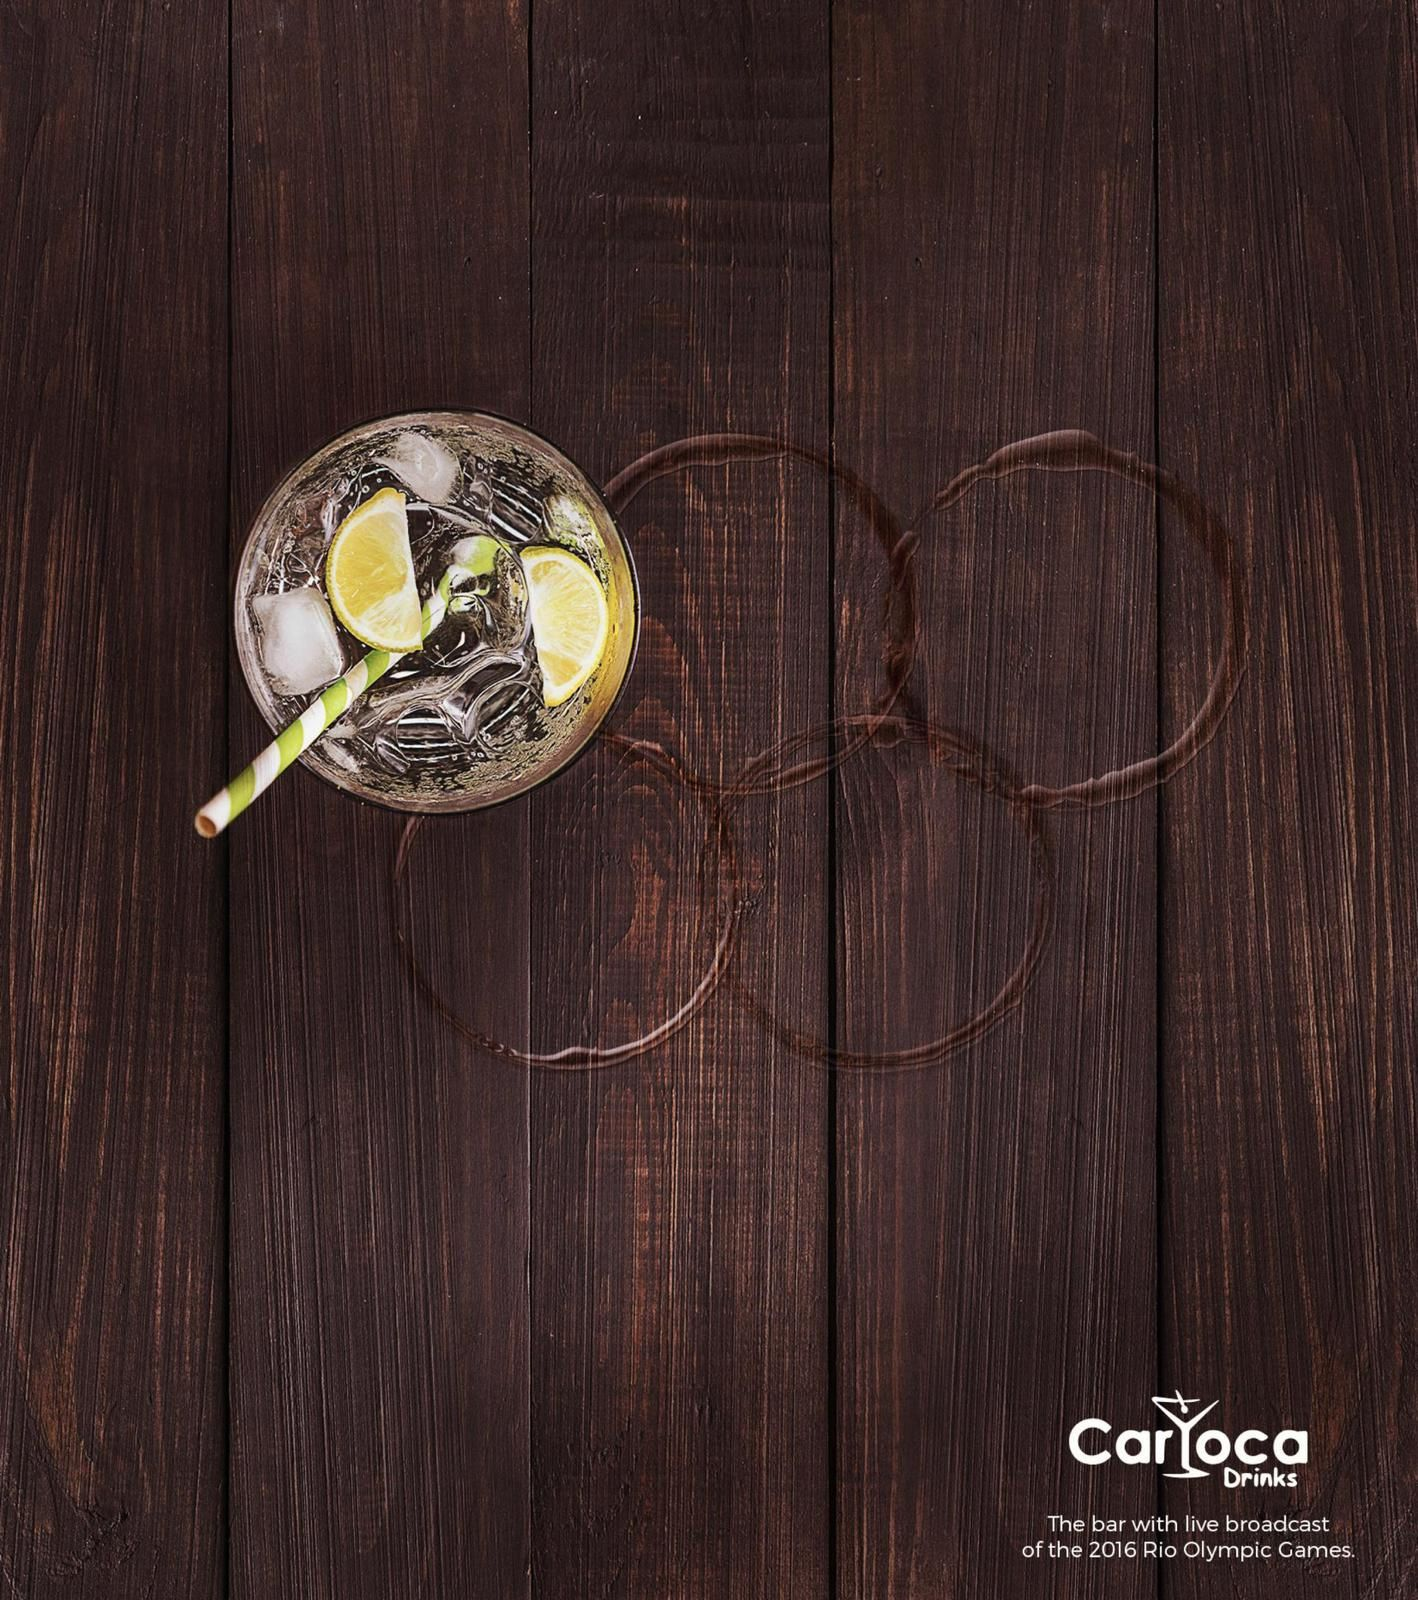 """The bar with live broadcast of the 2016 Rio Olympic Games."" - Carioca Drinks (bar) 